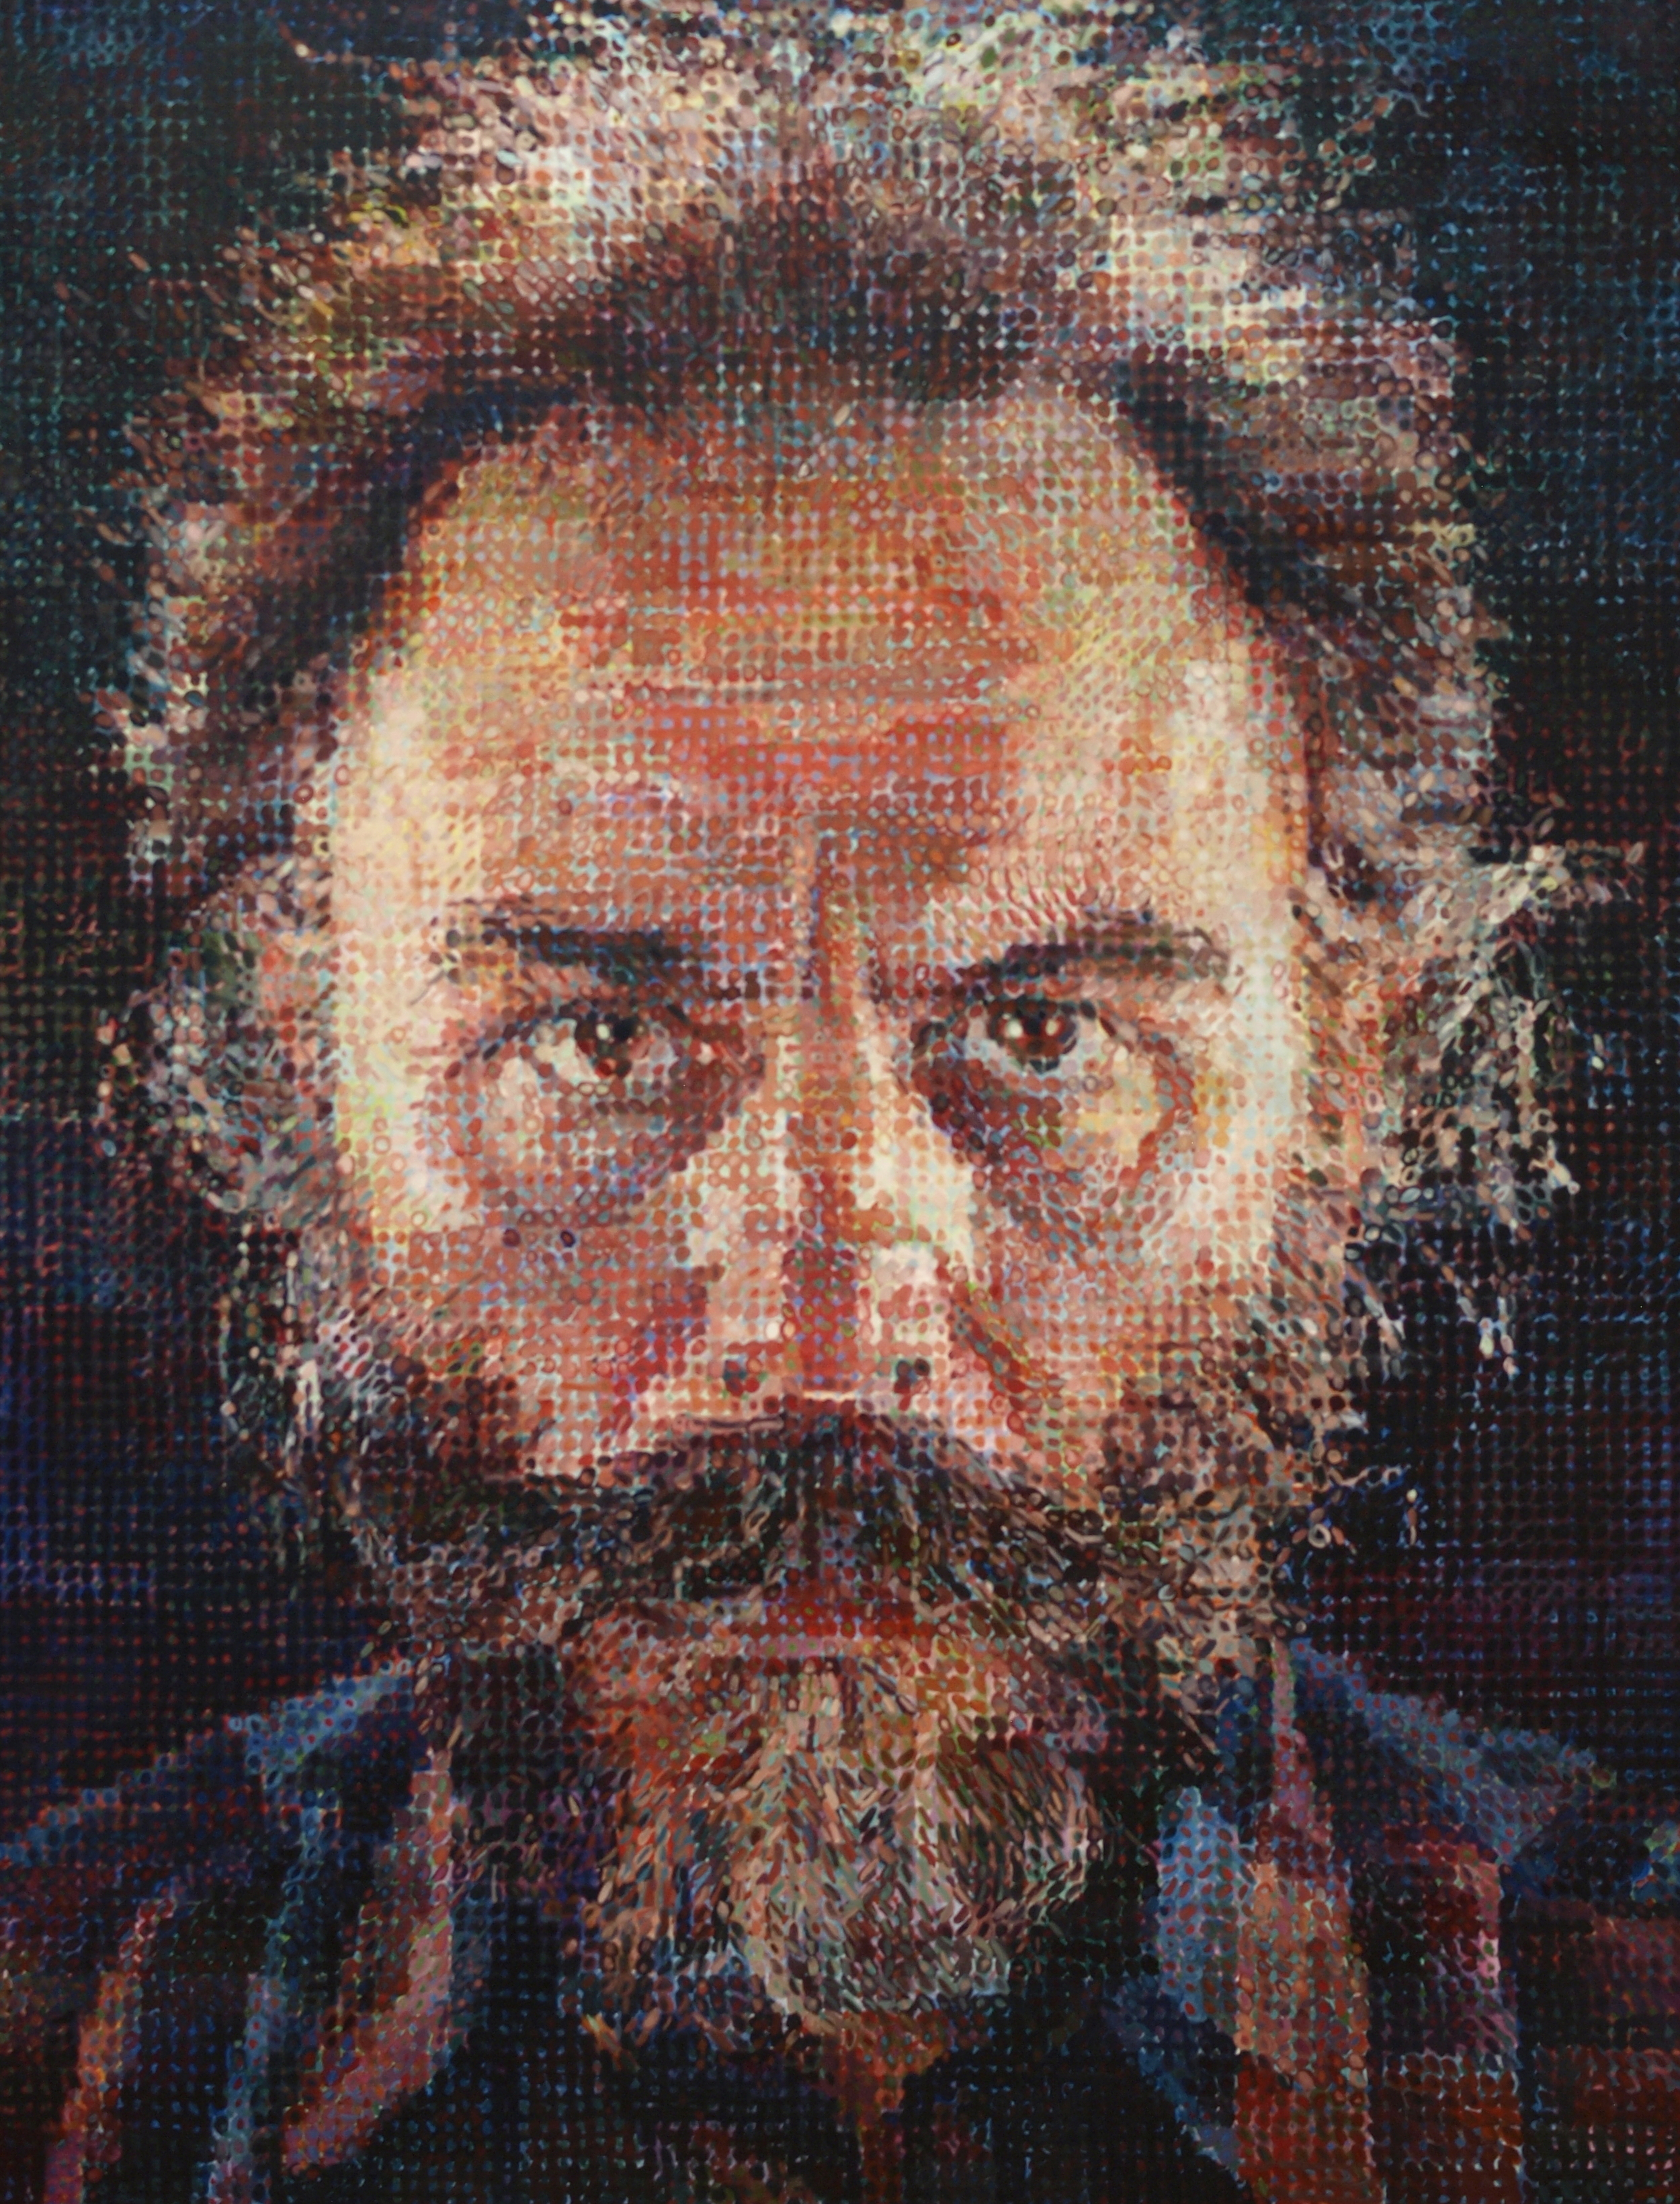 Painting by Chuck Close photographed in The Metropolitan Museum